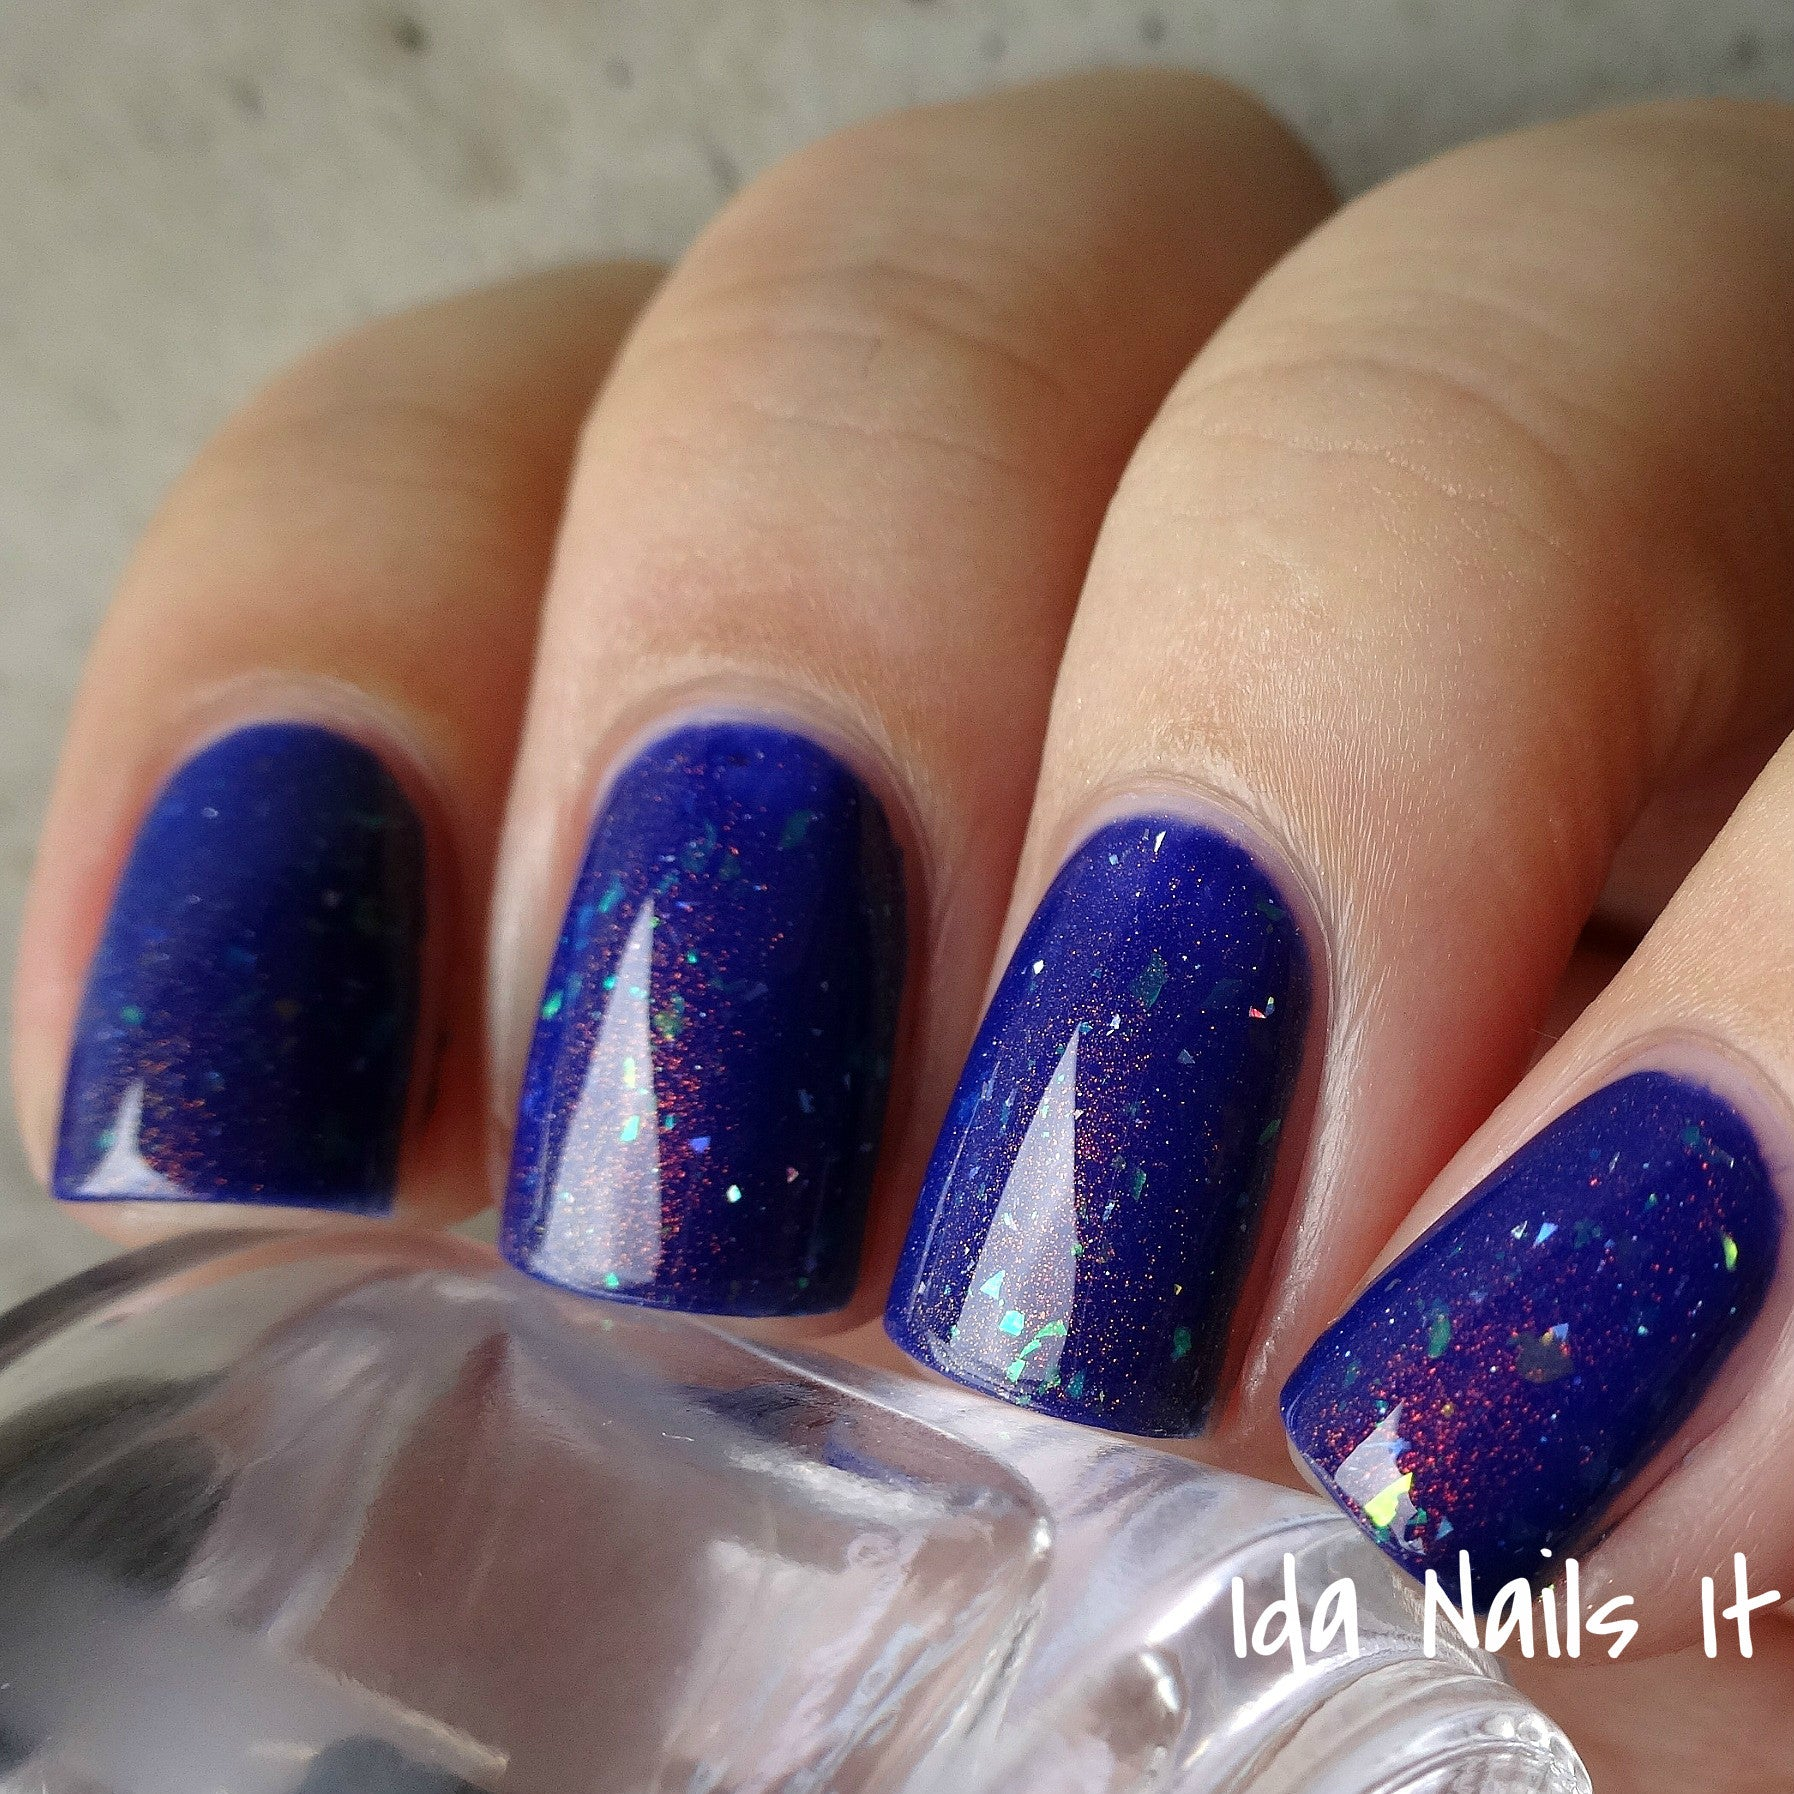 Alhambra - Blue Jelly Polish w/ Flakies & Holo Shards - Baroness X